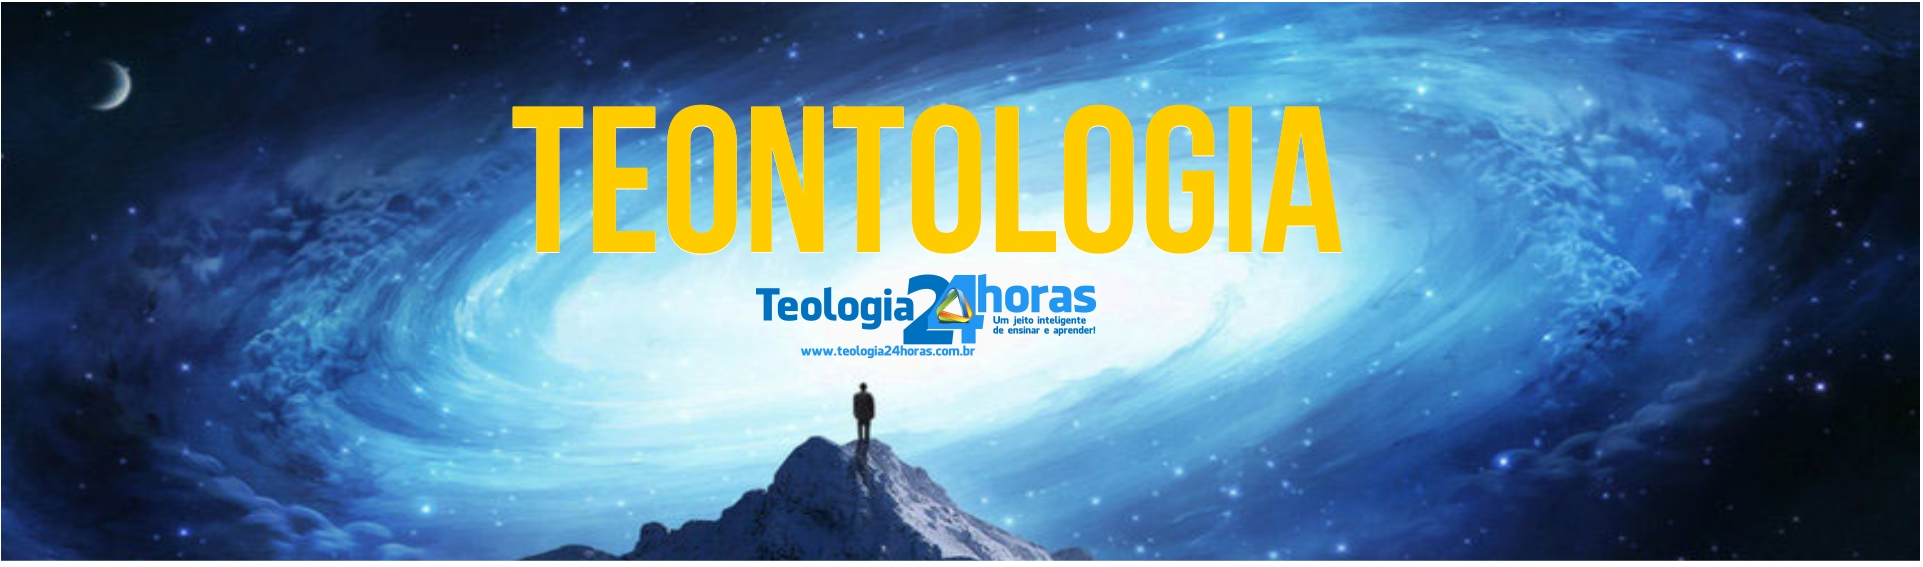 Banner teontologia